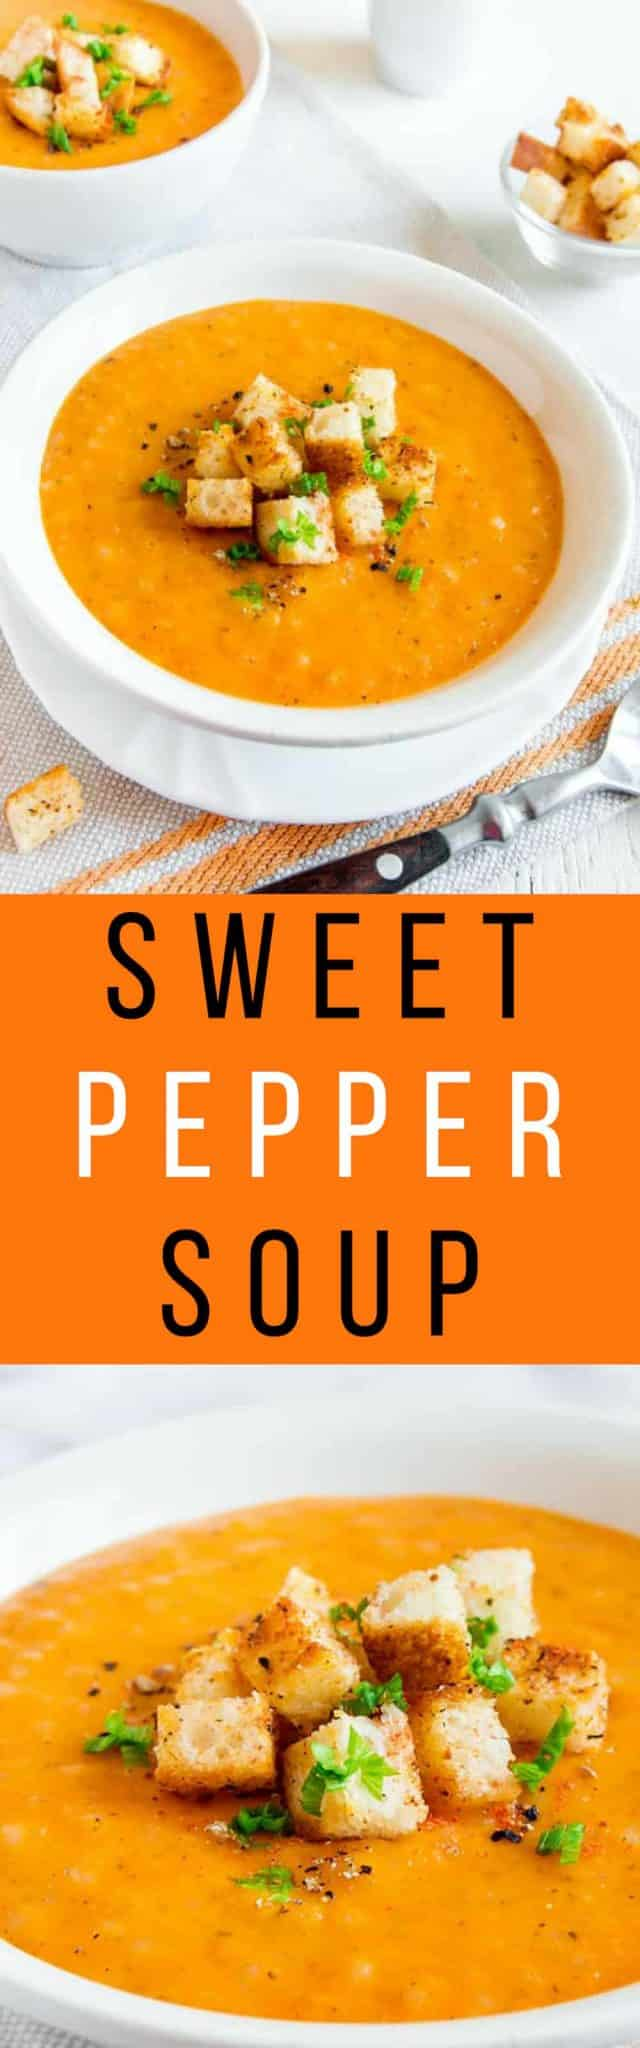 CREAMY and HEALTHY Sweet Pepper Soup!  This easy dinner recipe combines sweet peppers with chicken broth and rice.  This gluten-free recipe is easy to make and can easily be turned vegetarian by using vegetable broth.  This is the perfect soup for using up a bunch of peppers!  Make sure to serve with some crusty Italian bread!